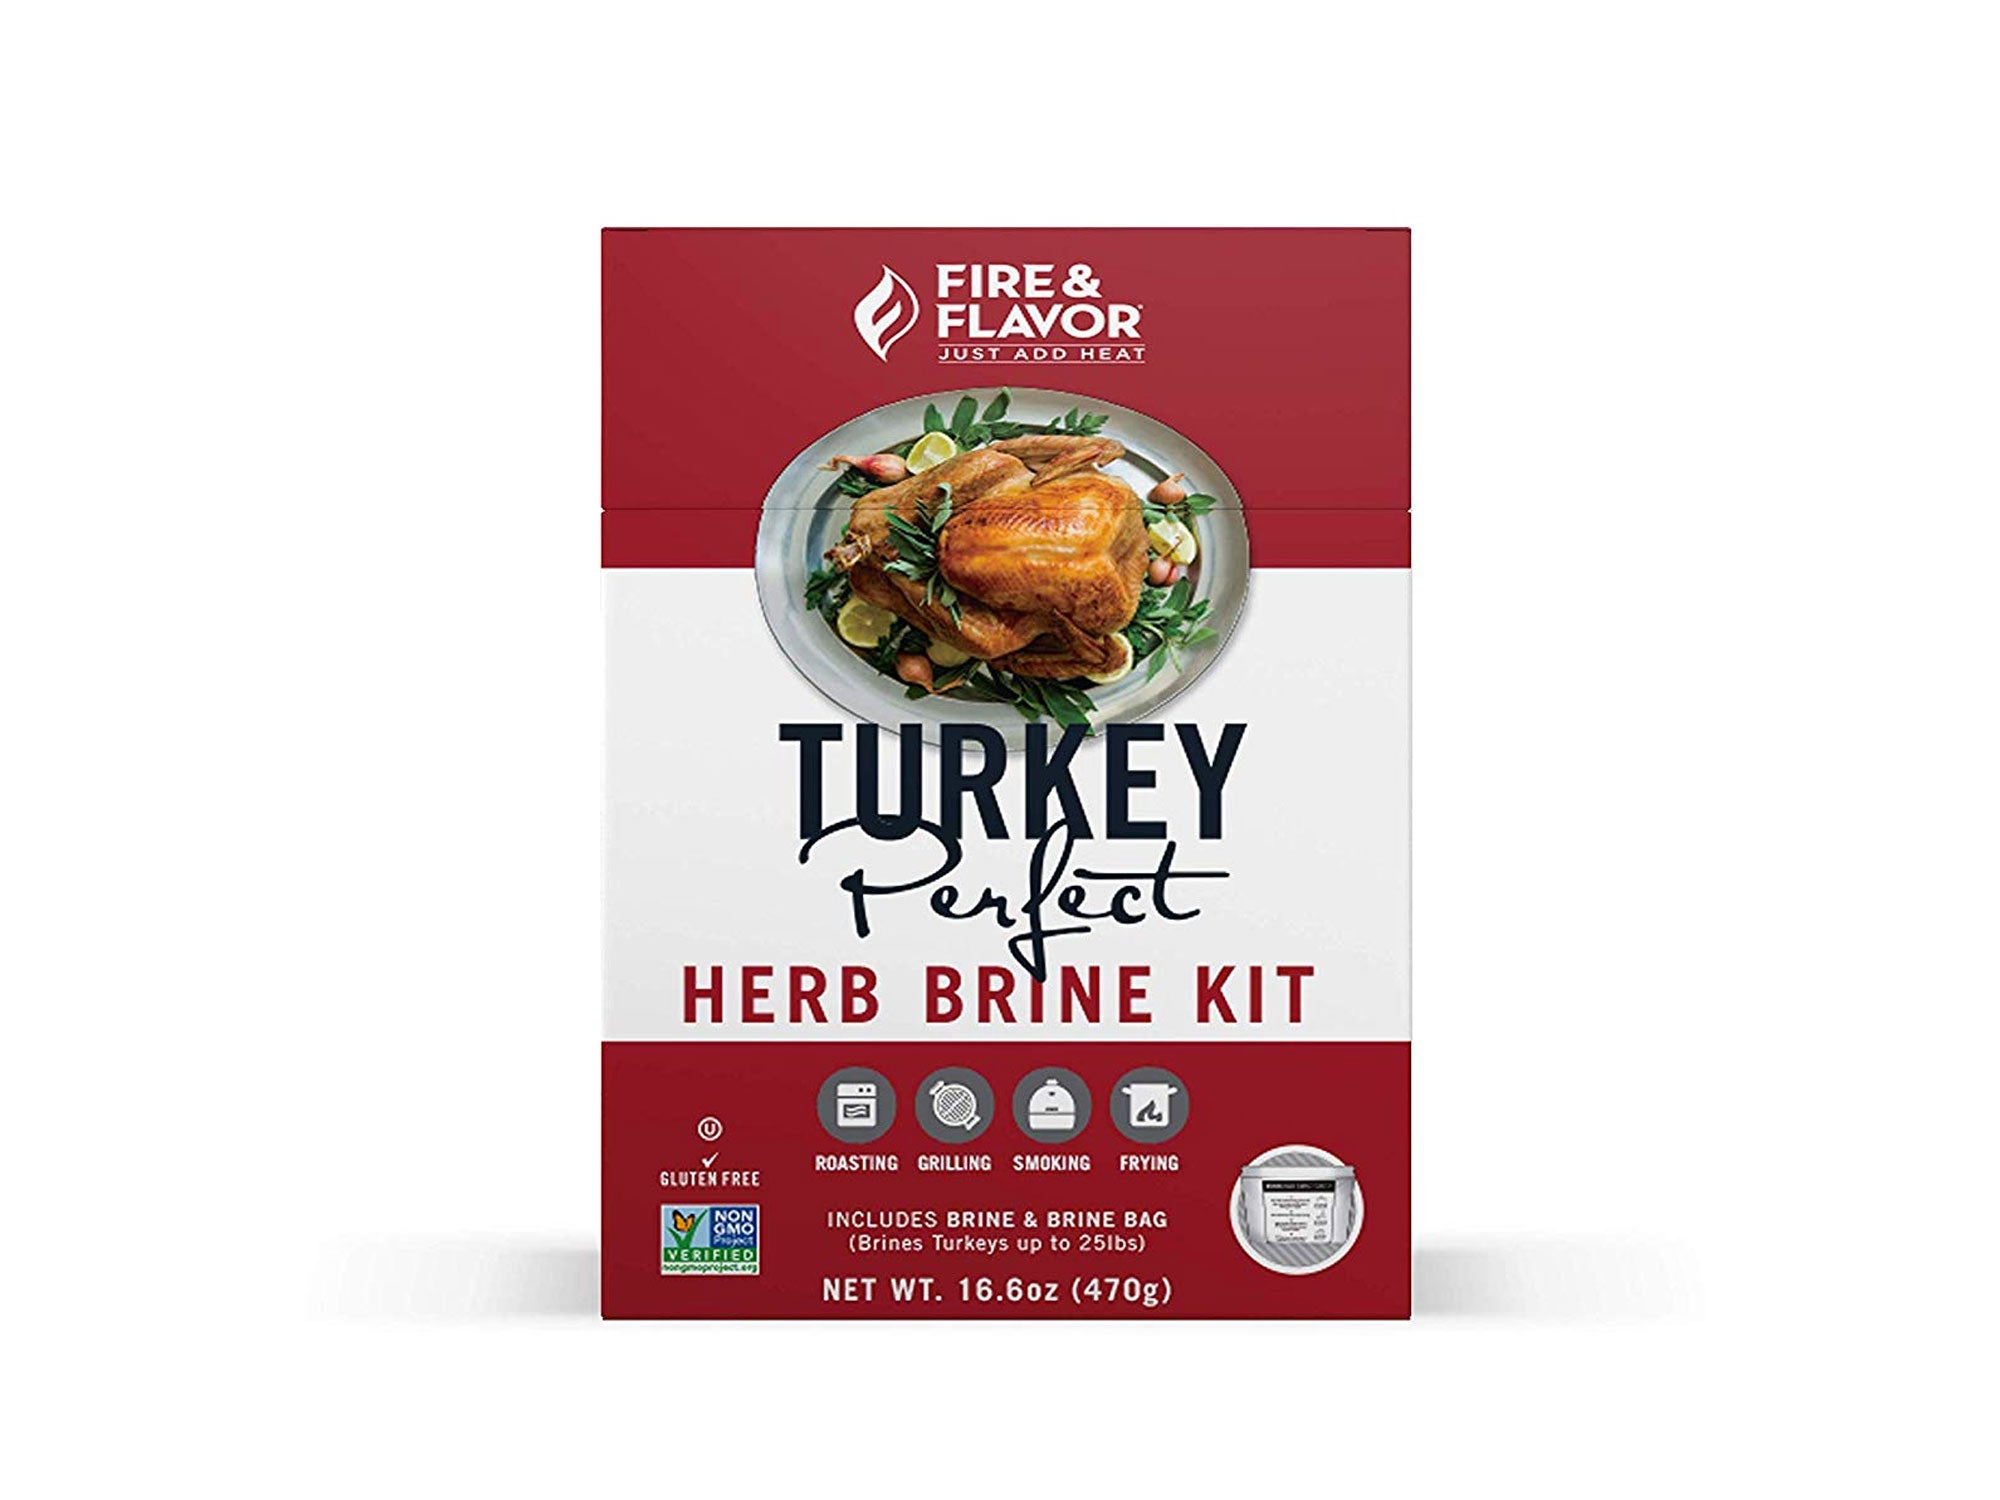 Fire & Flavor turkey brine kits are available in apple sage, Cajun, and herb flavors.